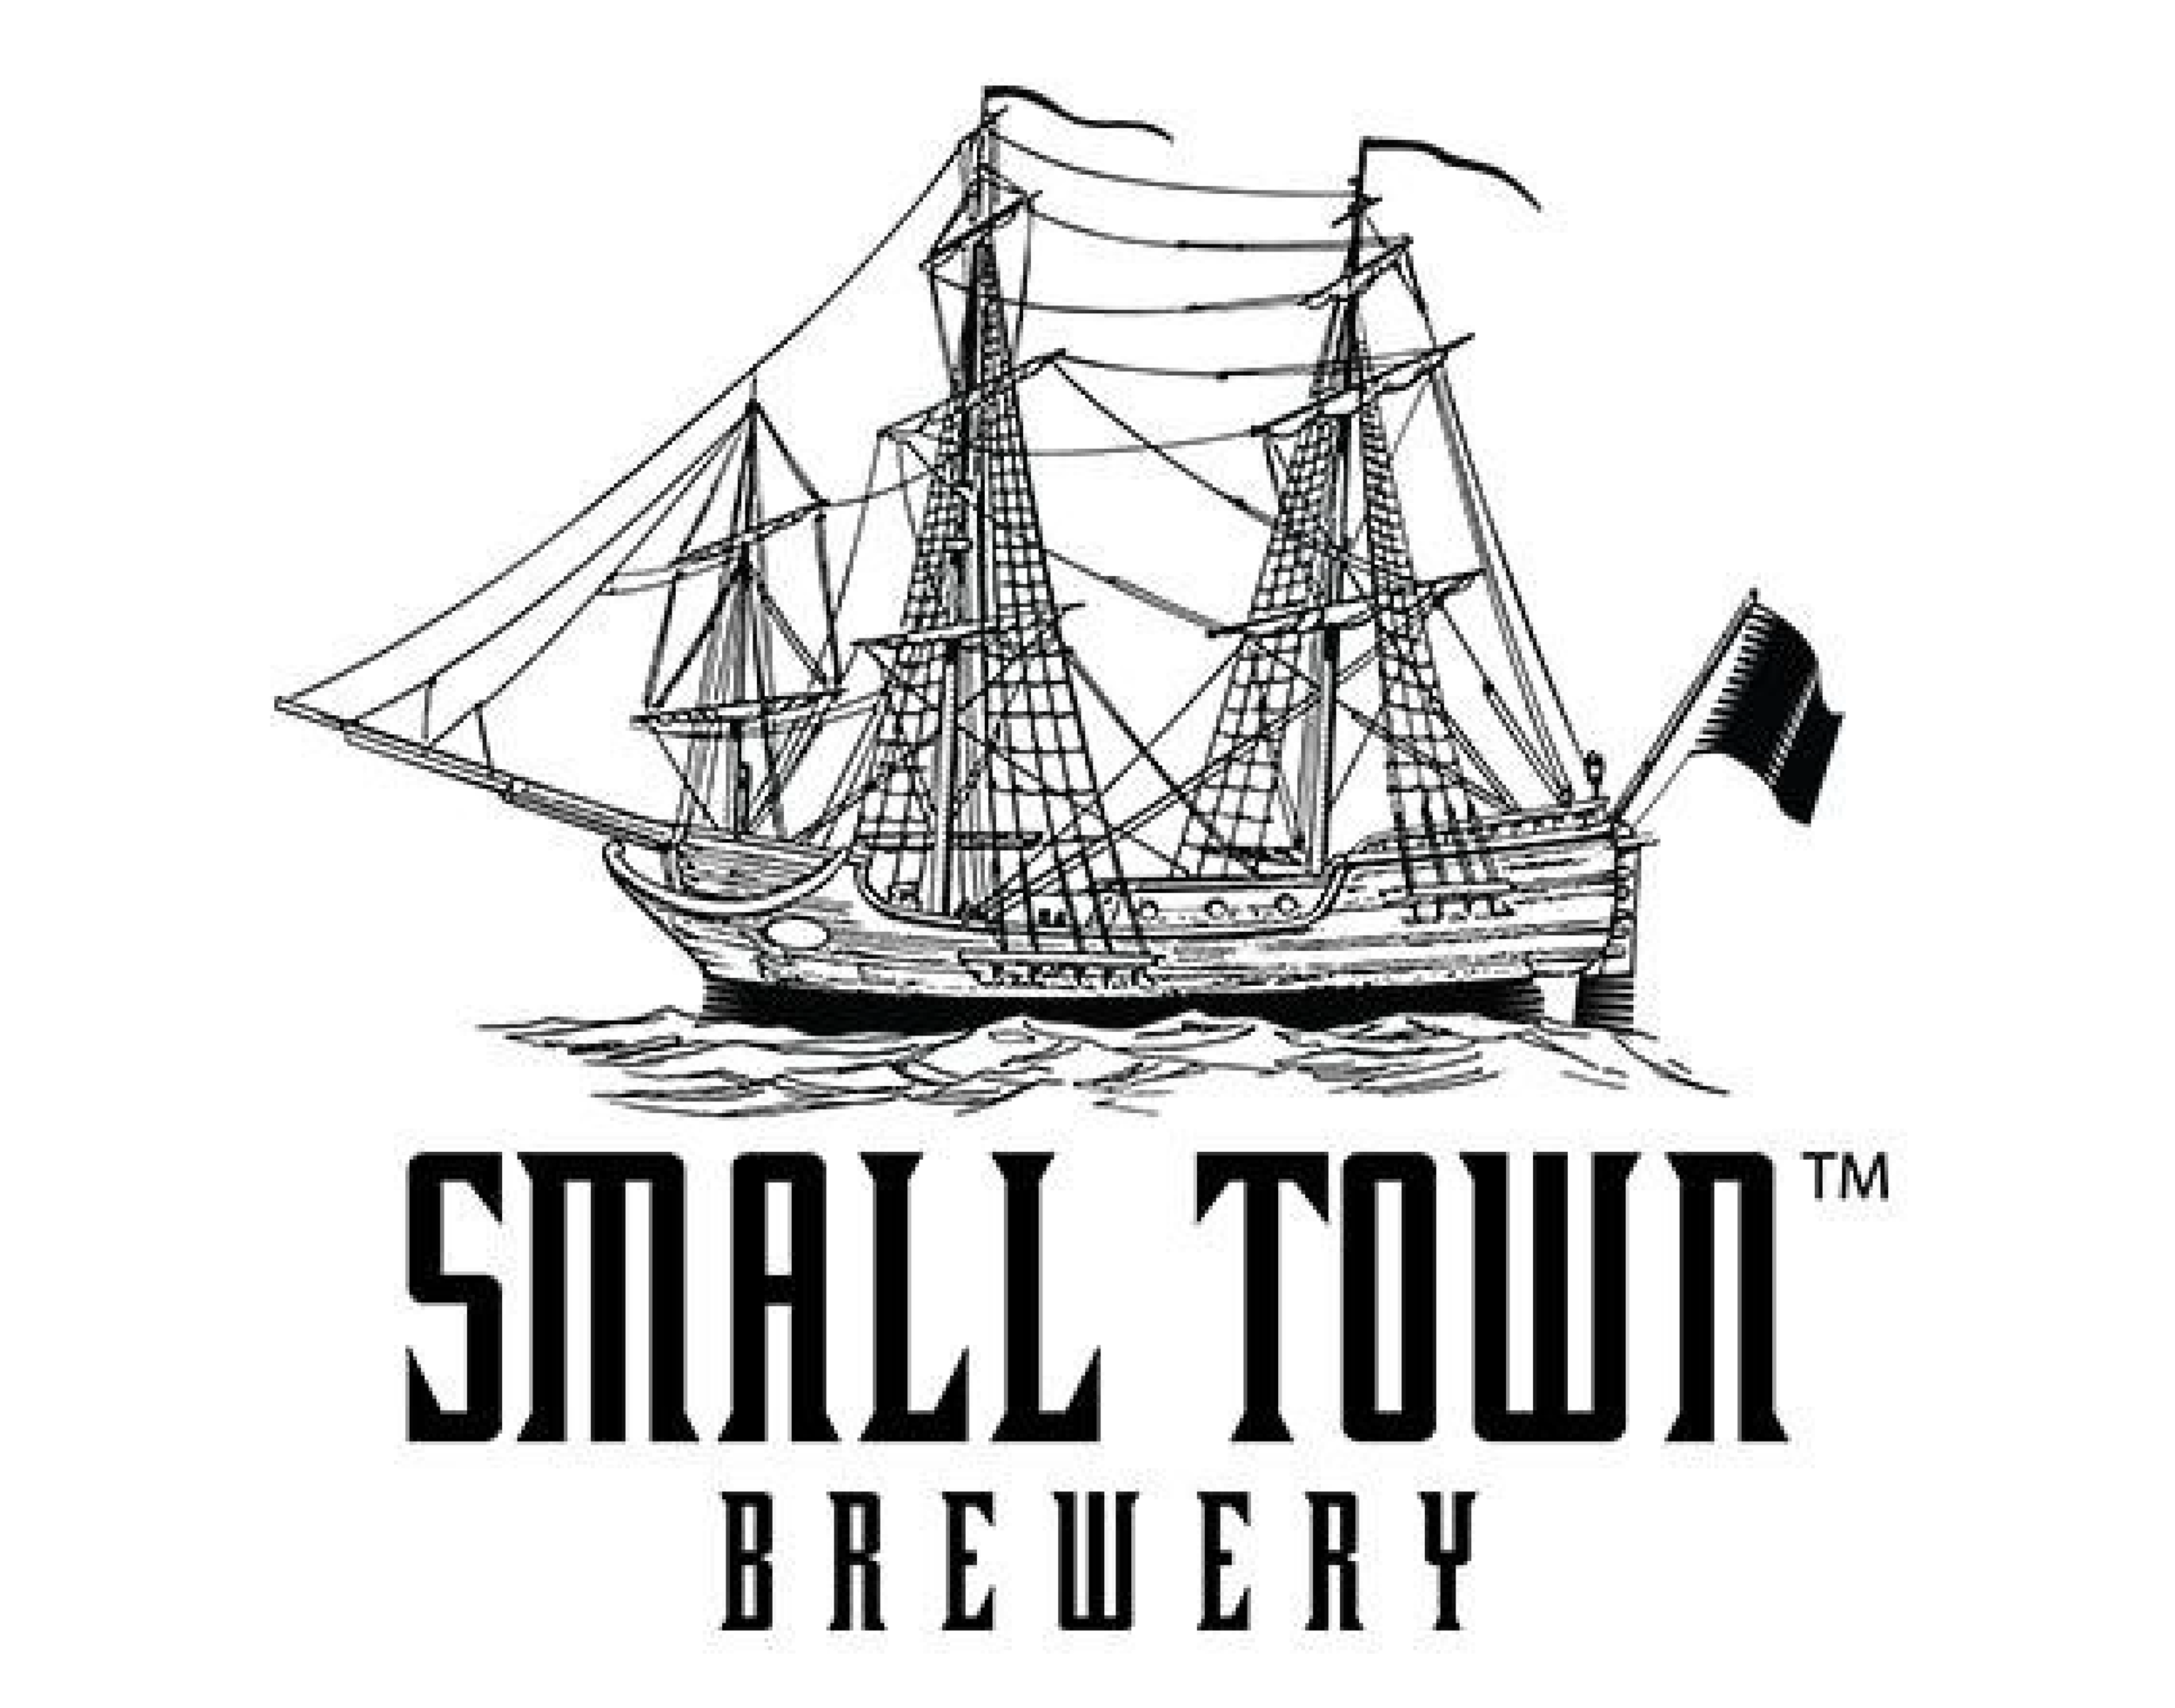 Small Town Brewery logo. Links to Small Town Brewery website.